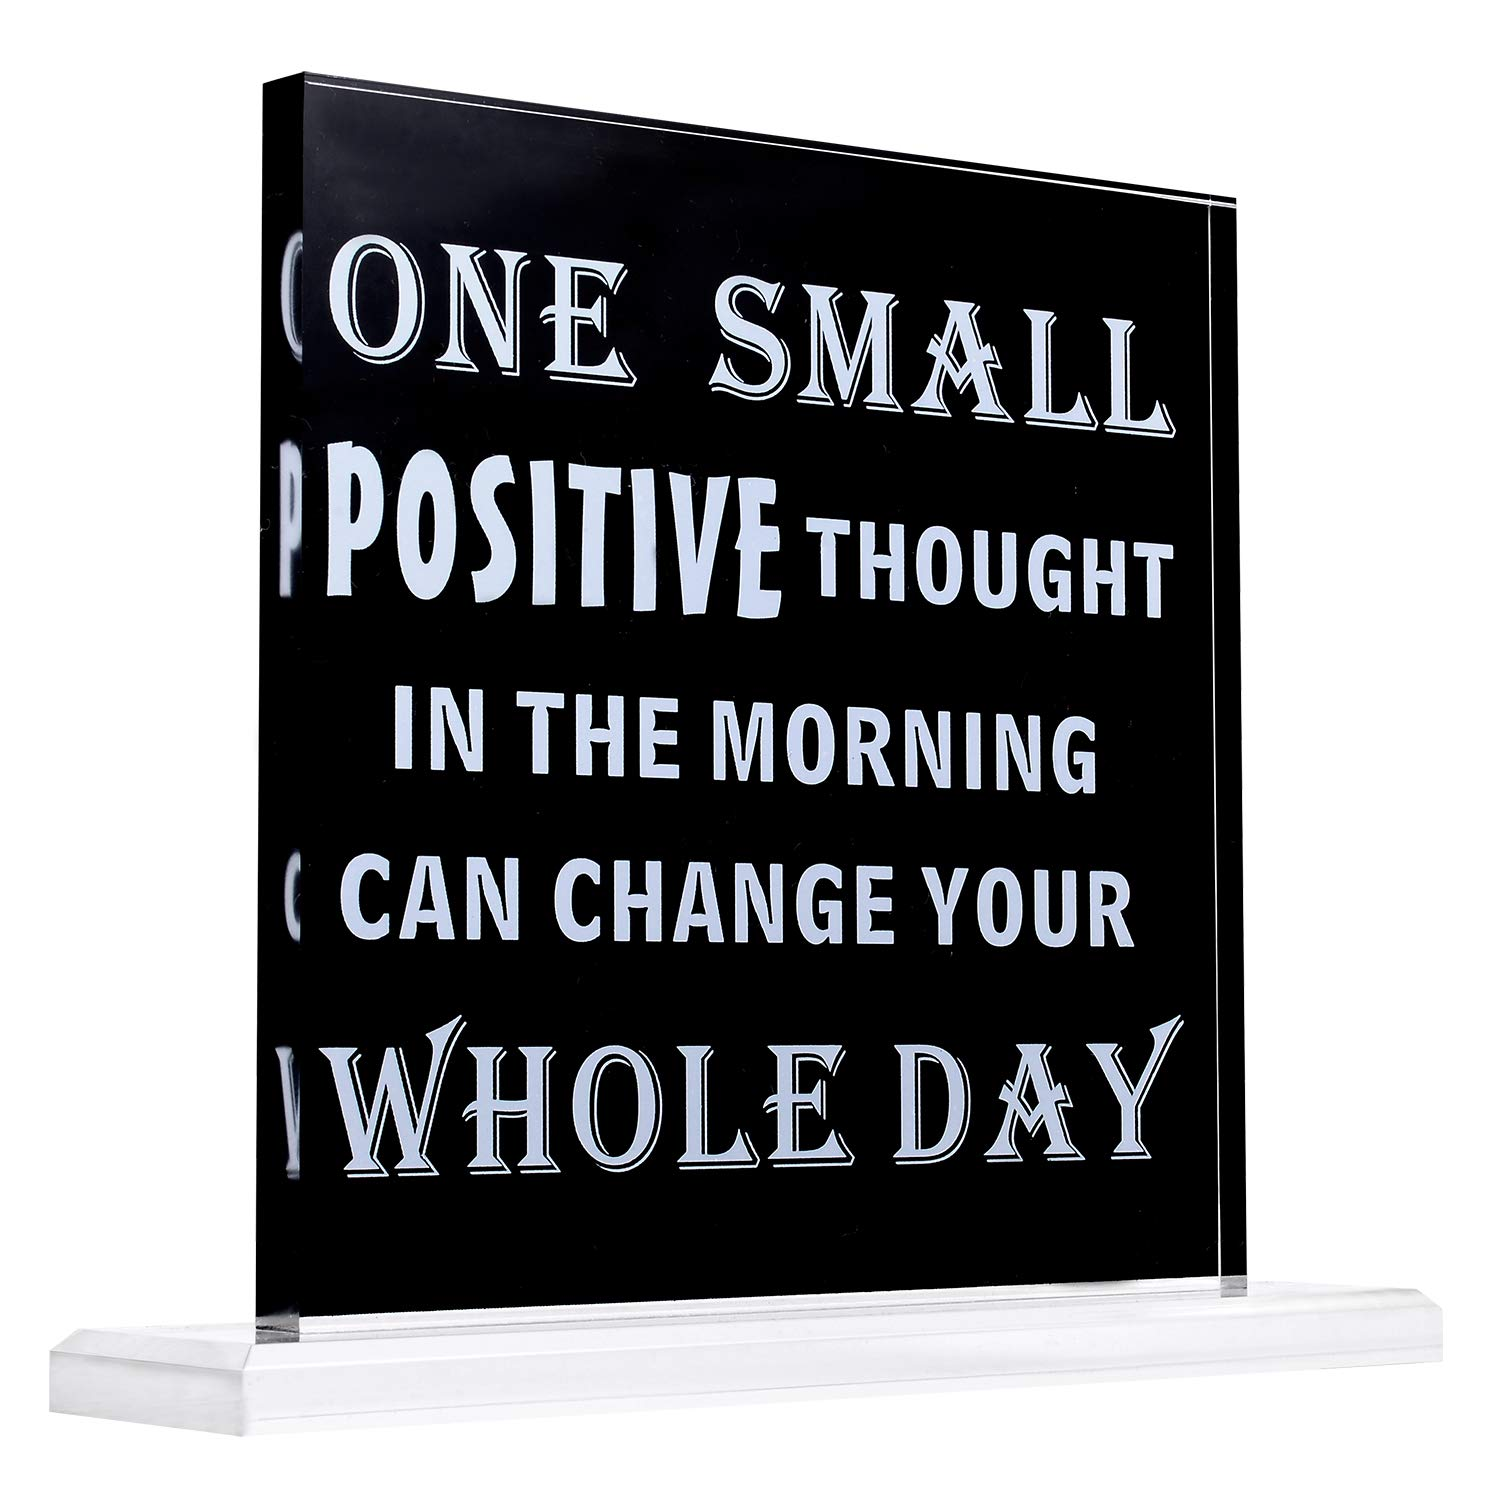 Kichwit Home Decor Sign, One Small Positive Thought in The Morning Can Change Your Whole Day, Inspirational Saying for Desk and Wall Decor